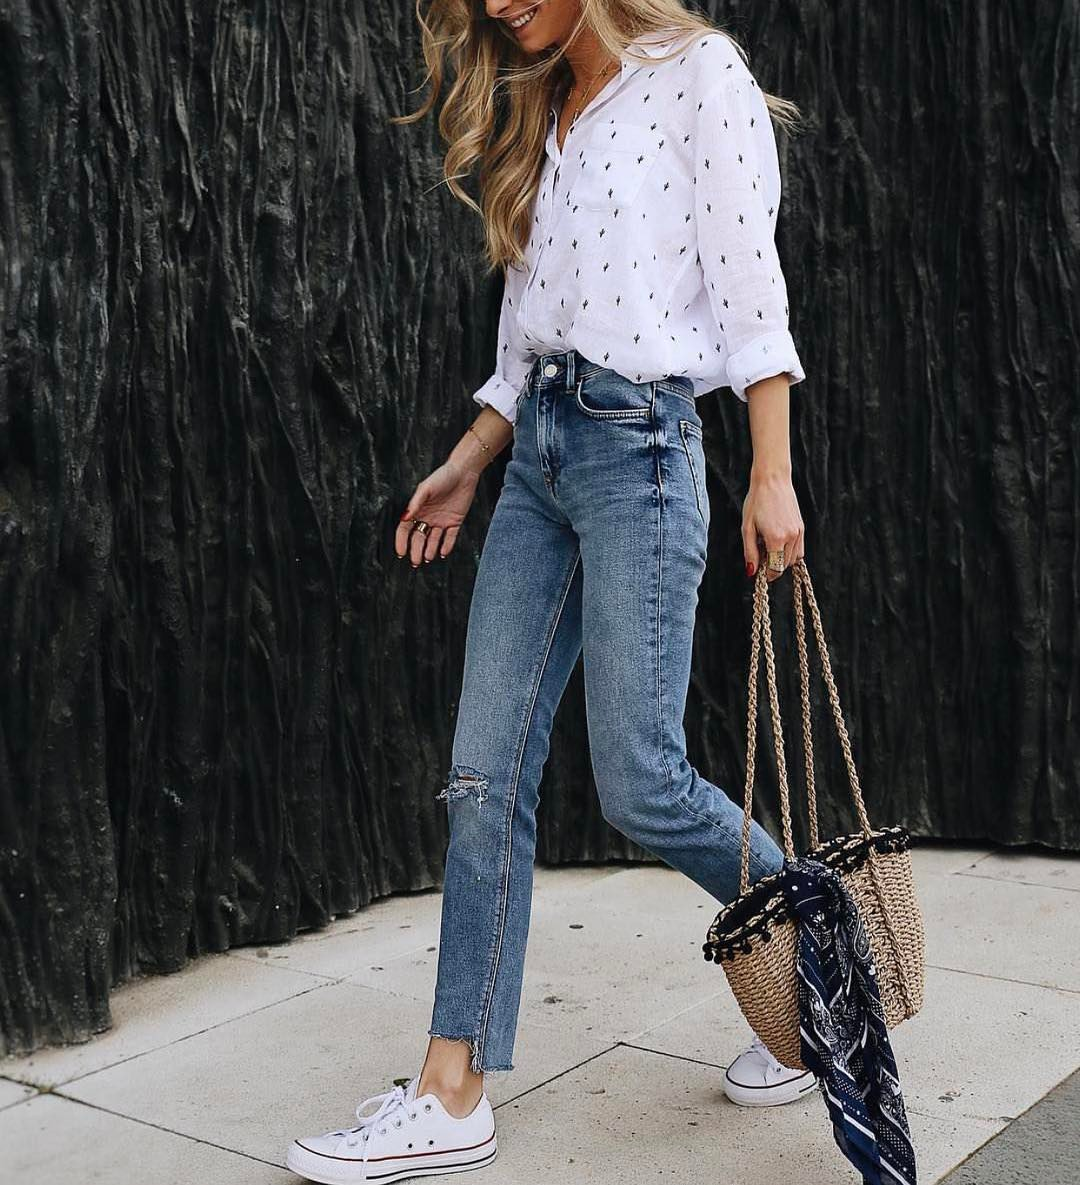 White Shirt With Wash Blue Jeans And White Trainers: Summer Essentials 2020